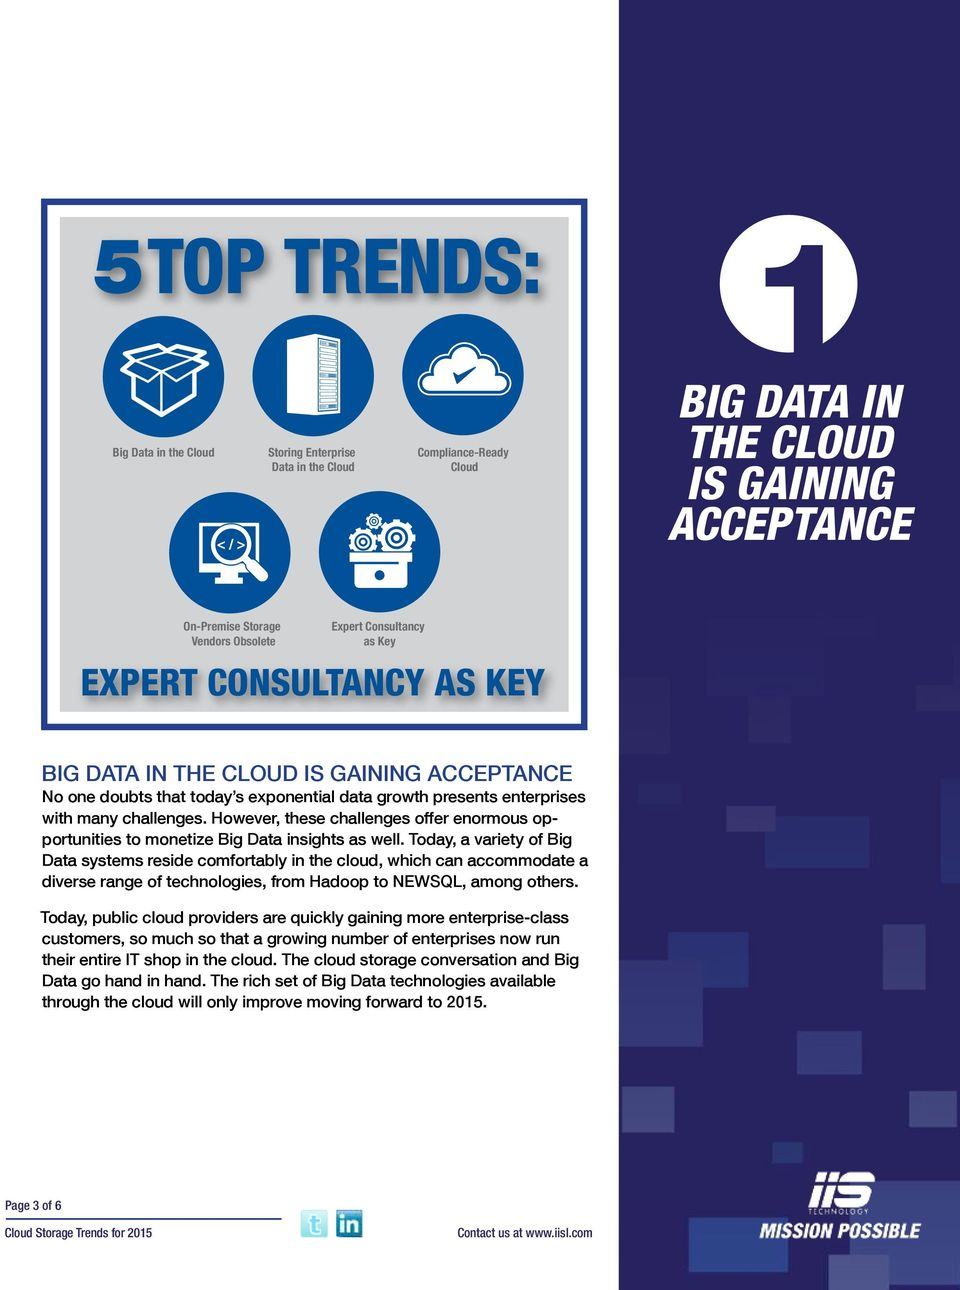 However, these challenges offer enormous opportunities to monetize Big Data insights as well.